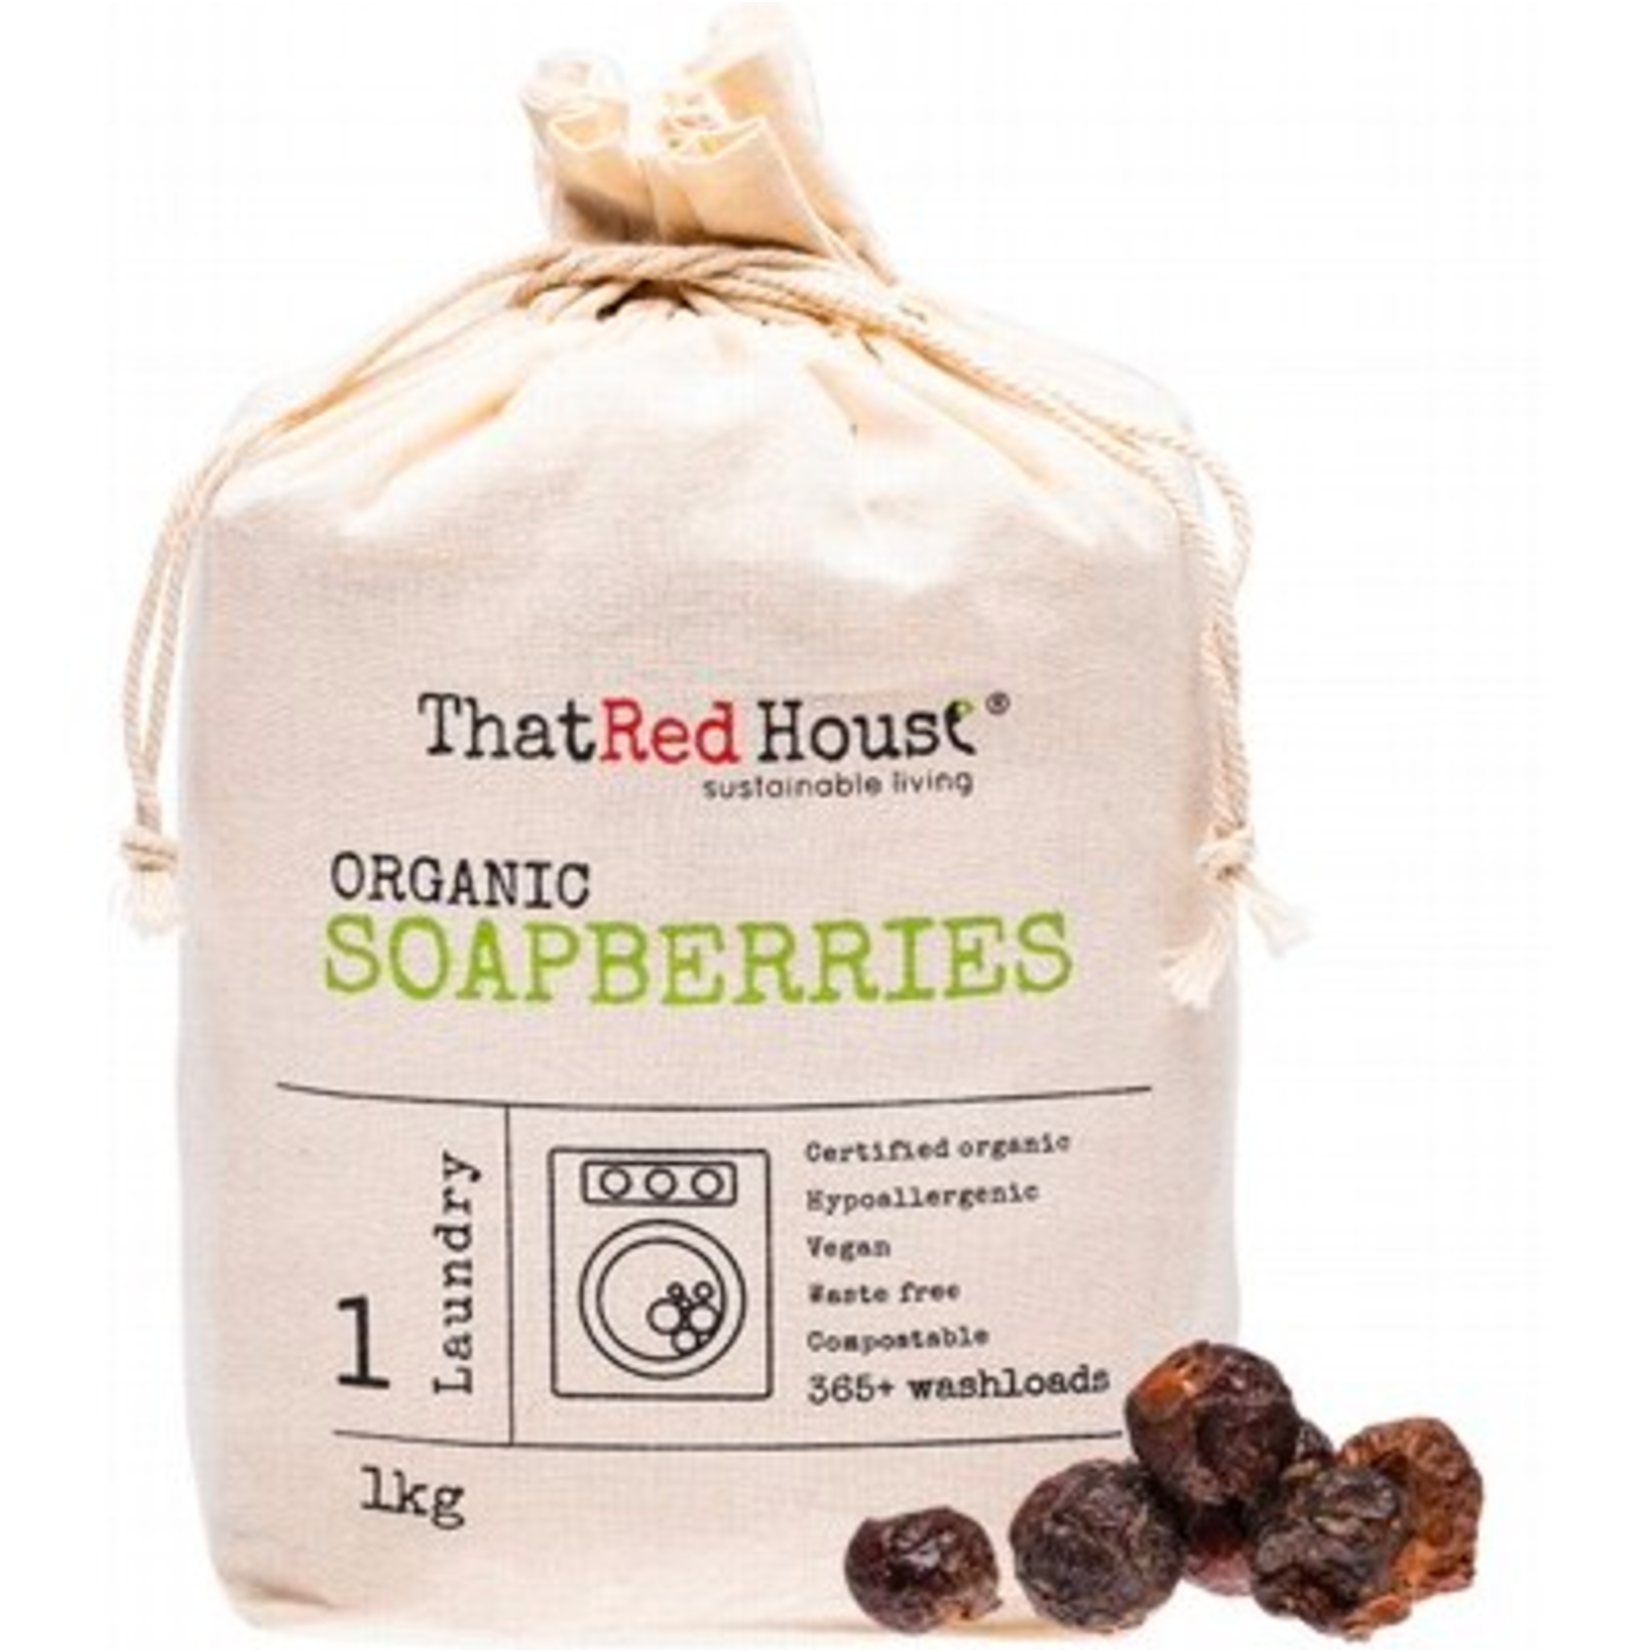 That Red House That Red House Organic Soapberries - 1kg